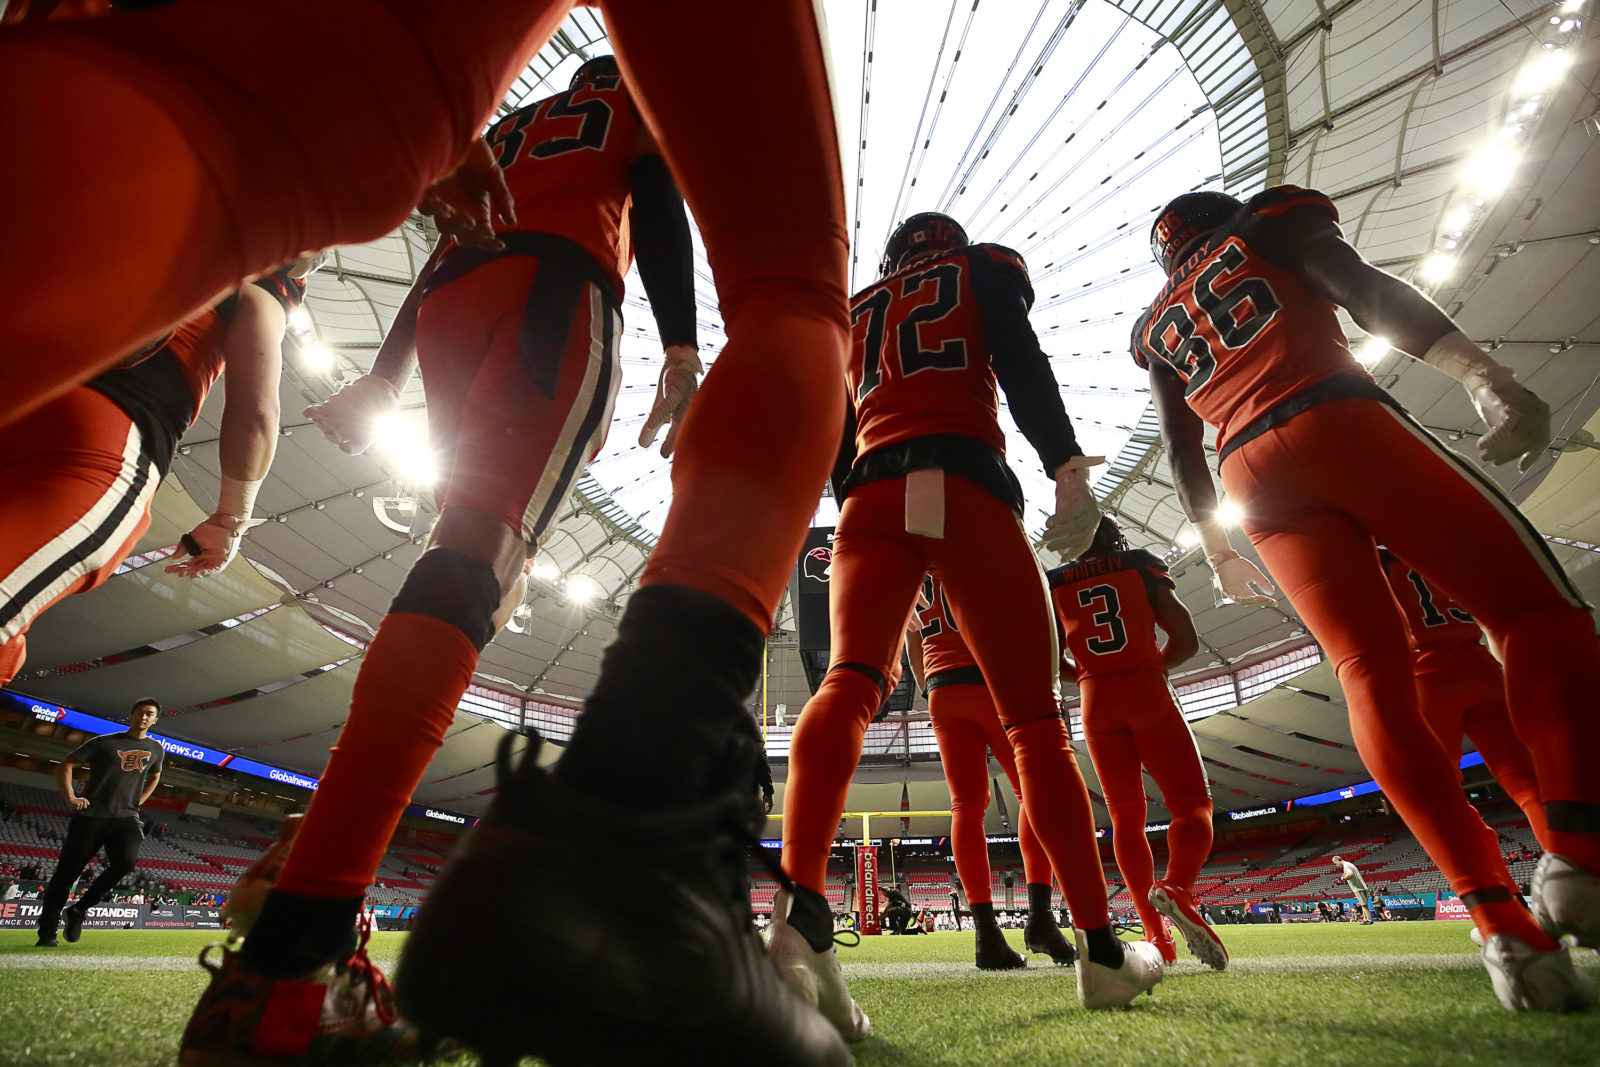 VANCOUVER, BC - SEPTEMBER 28:  The Montreal Alouettes play the BC Lions in their CFL game September 28, 2019 at BC Place in Vancouver, BC.  (Photo by Jeff Vinnick/BC Lions)